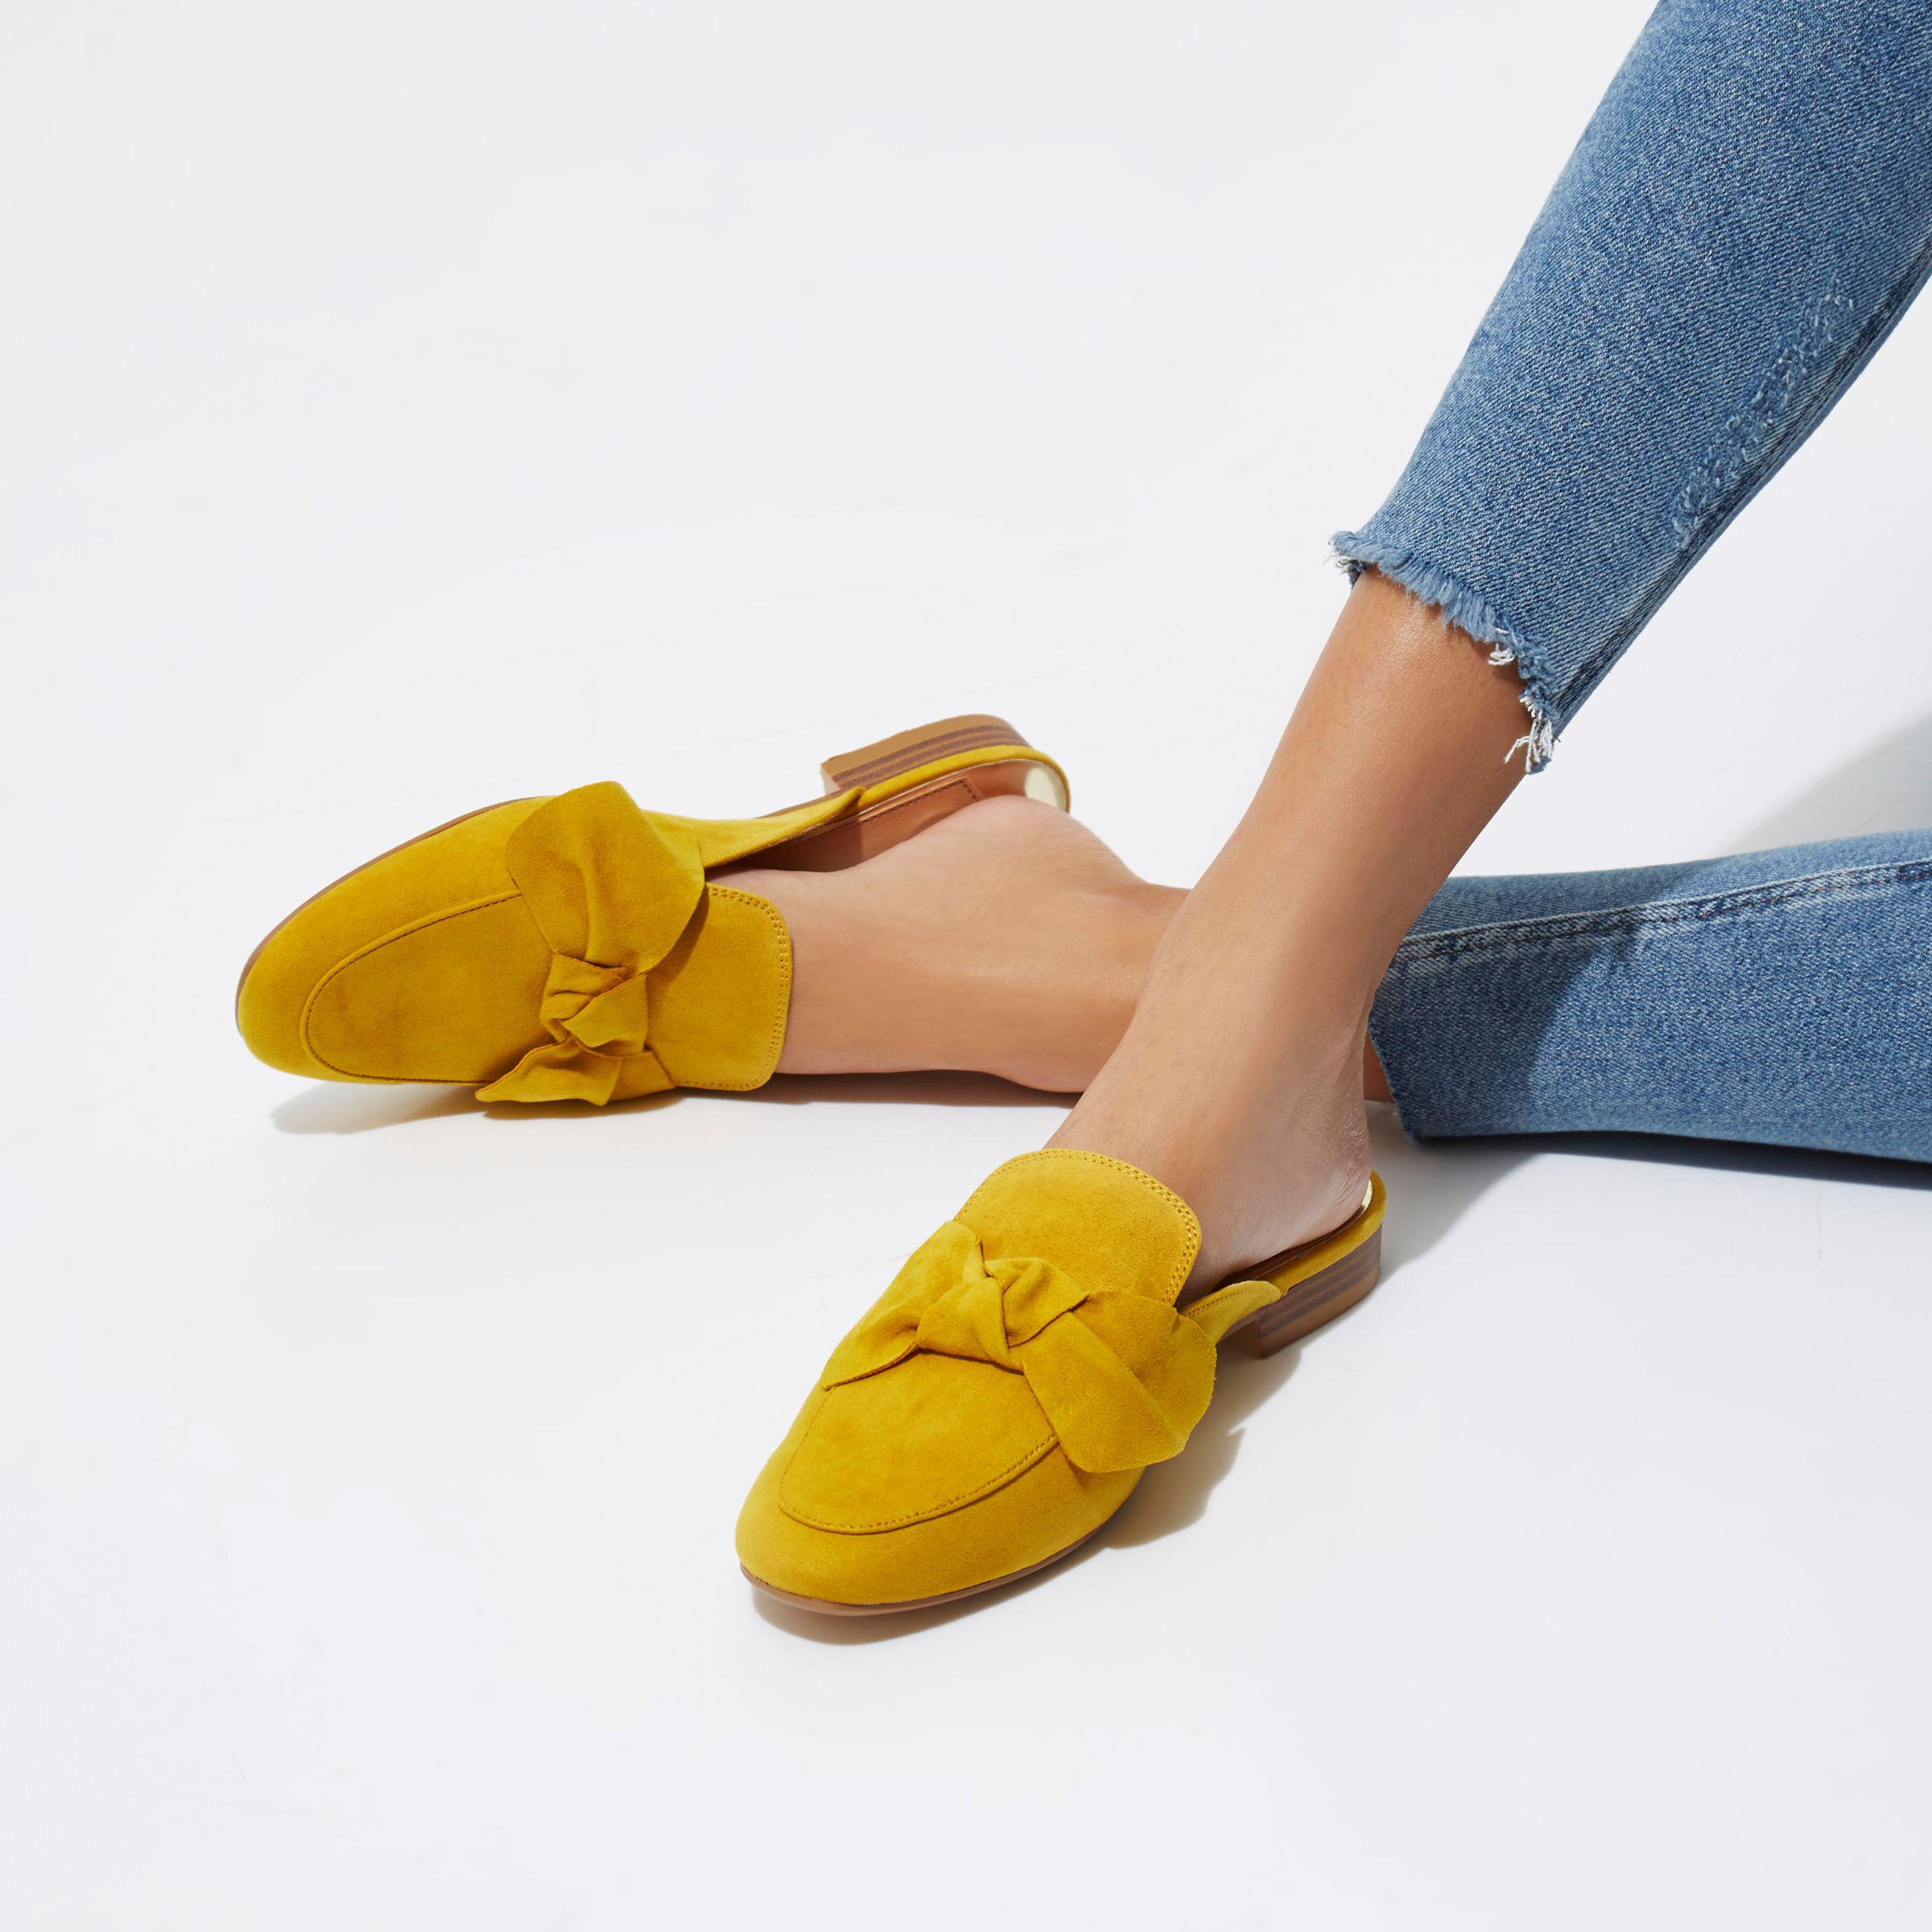 9f78e4ef8 Lyst - River Island Yellow Bow Front Backless Loafer in Yellow